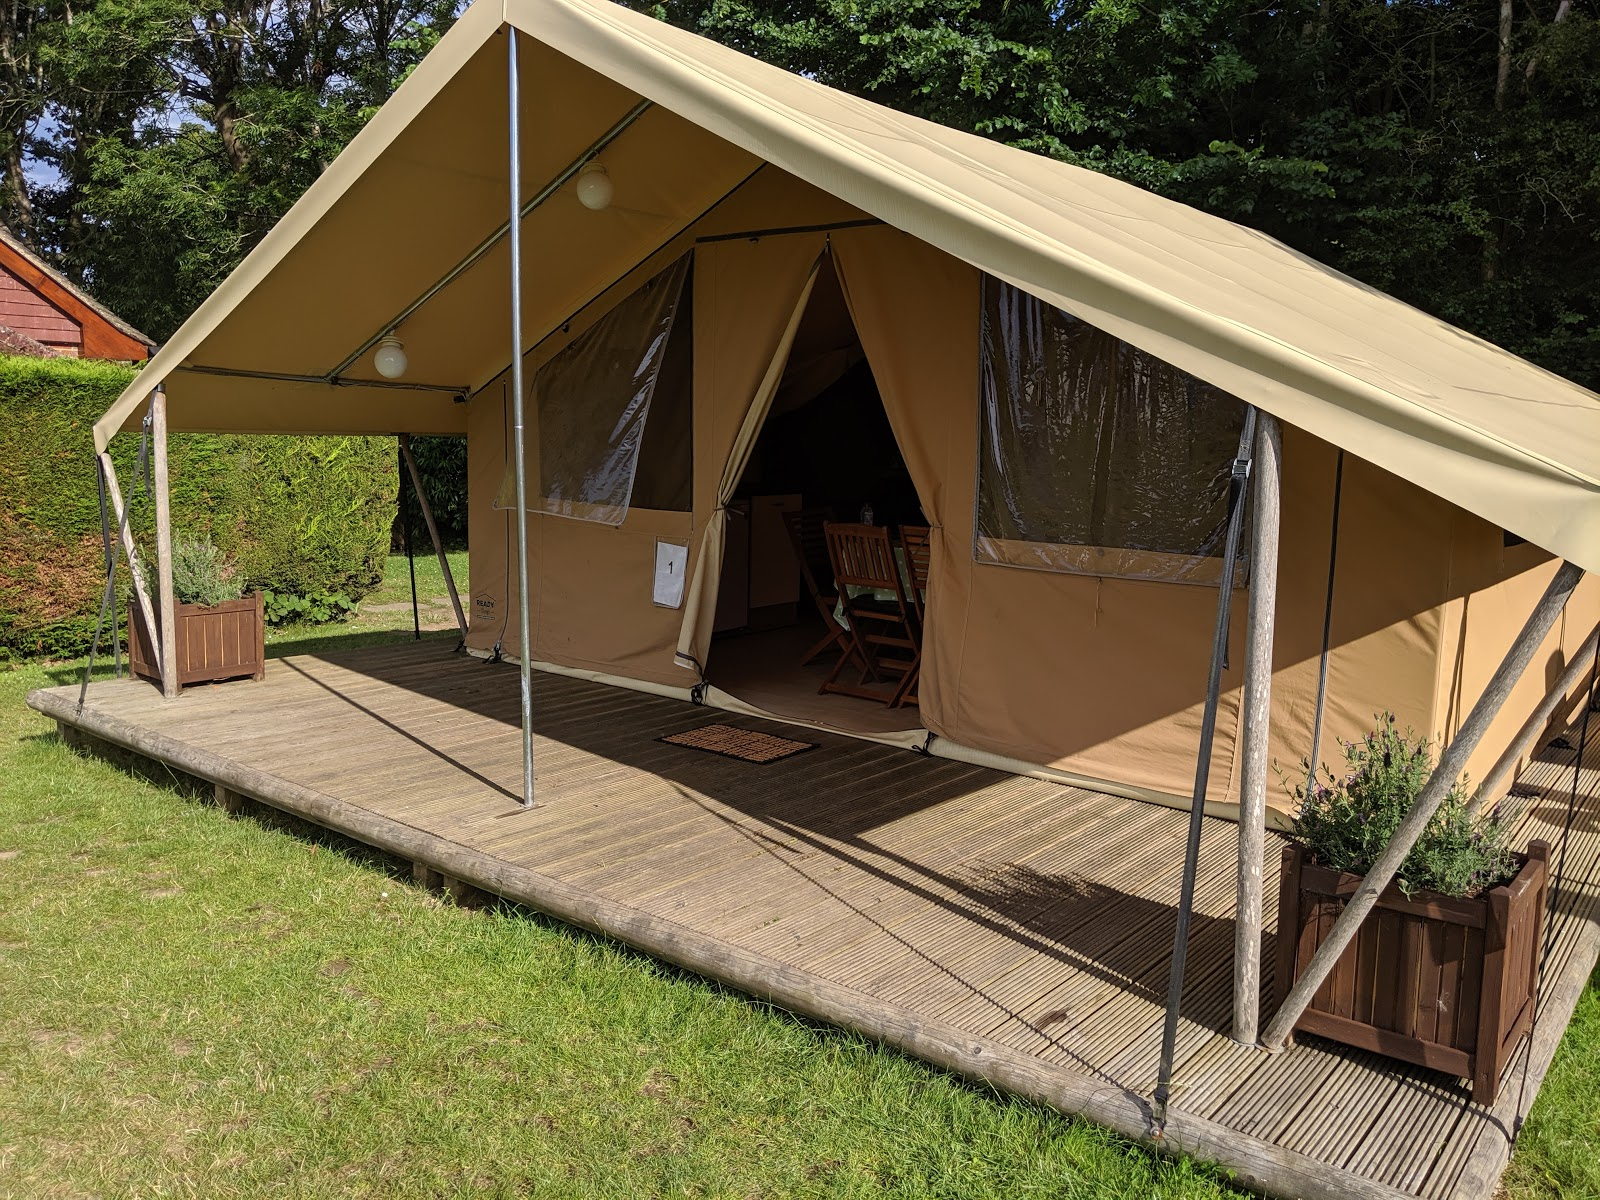 Ready Camp Horsley Review : Glamping near LEGOLAND and Chessington World of Adventures - tent exterior